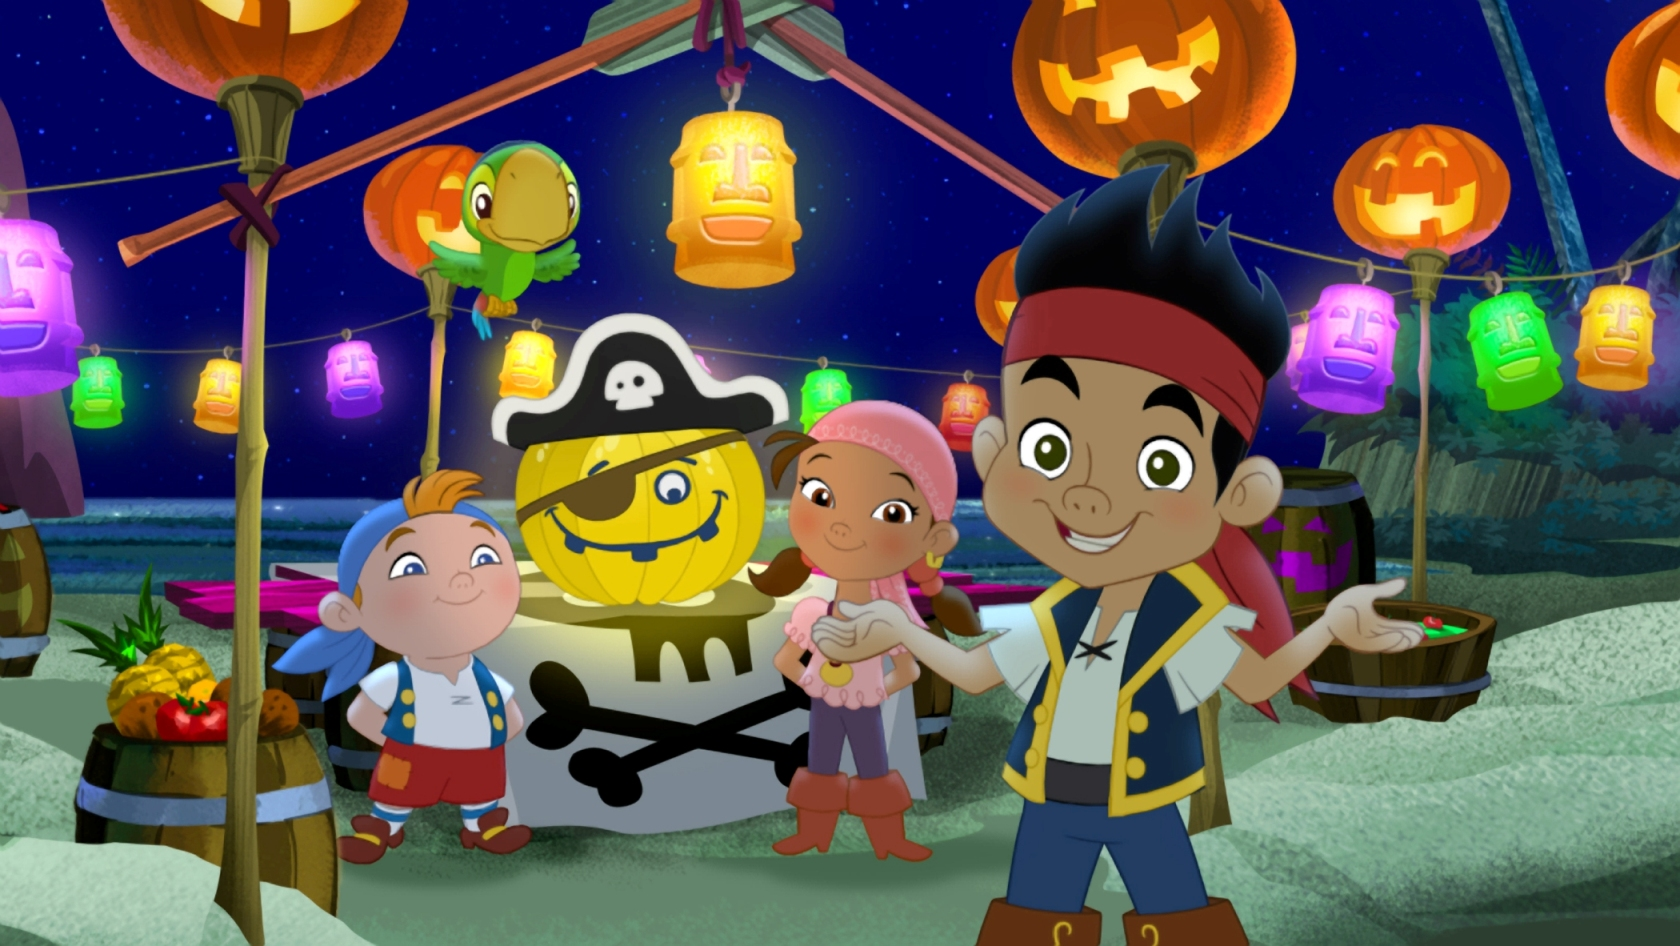 Jake e os Piratas da Terra do Nunca- Programação Halloween do Disney Junior